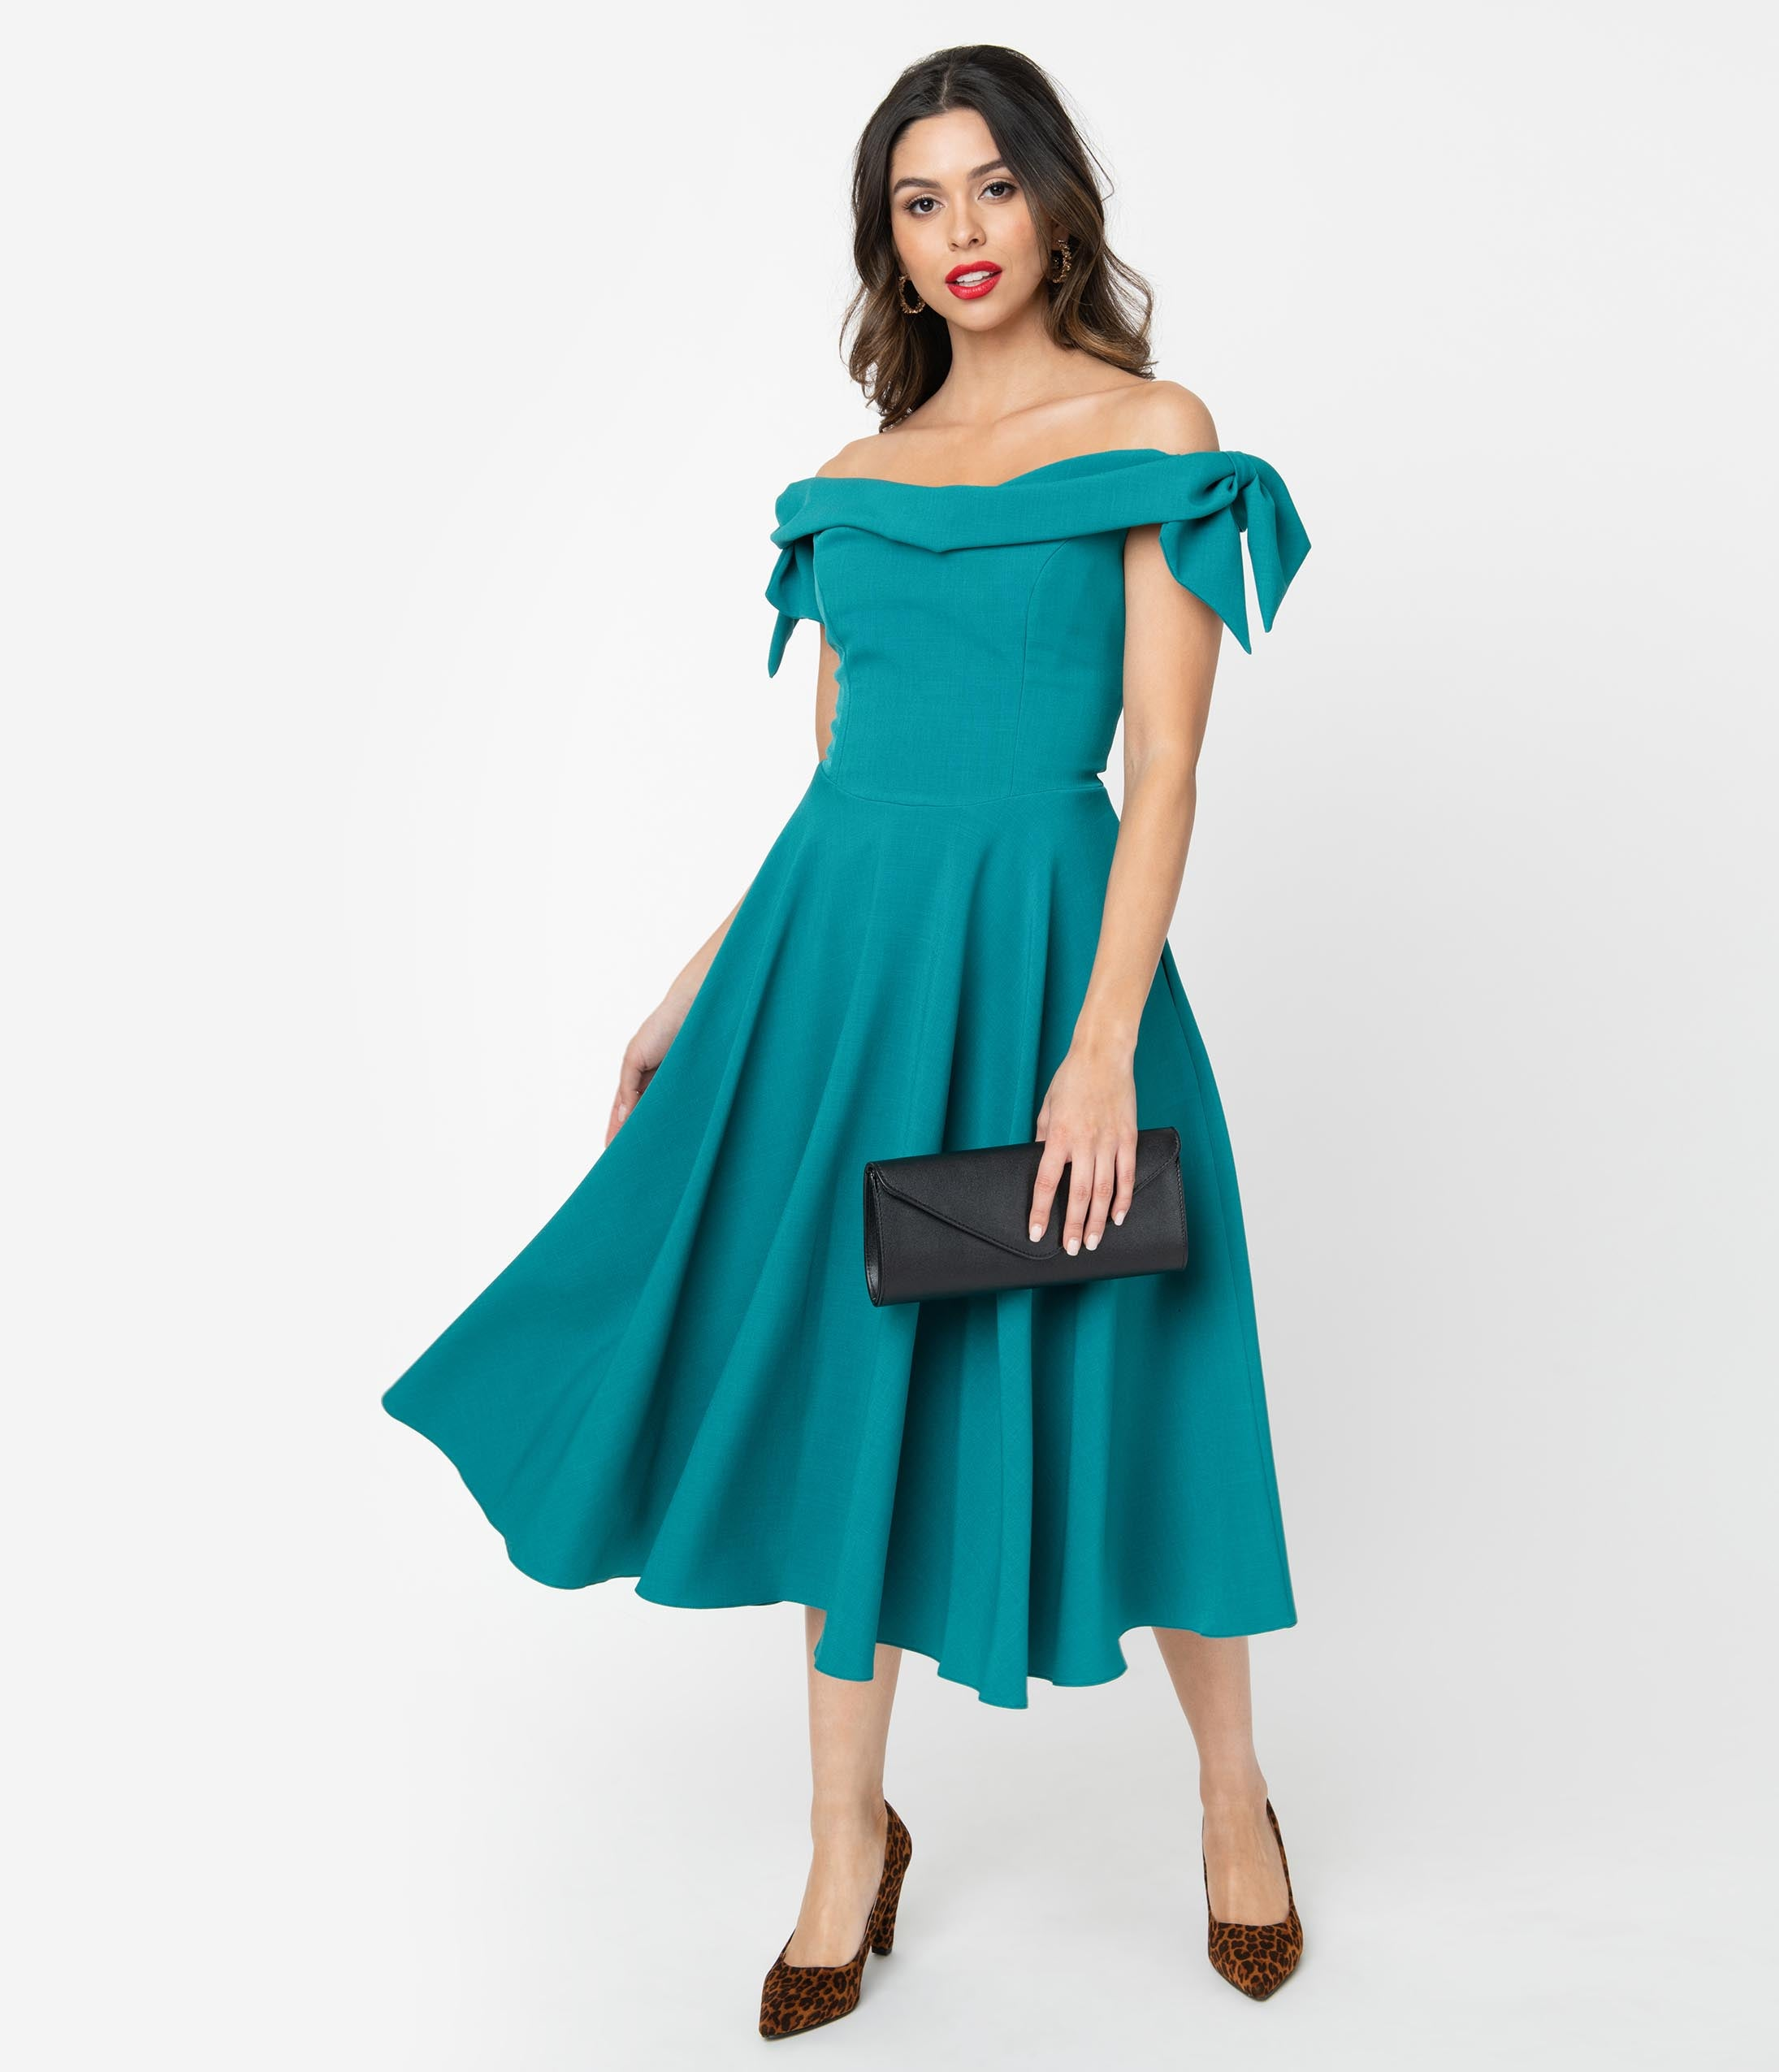 1950s Party Dresses & Prom Dresses for Sale The Pretty Dress Company Teal Off The Shoulder Tilly Swing Dress $198.00 AT vintagedancer.com